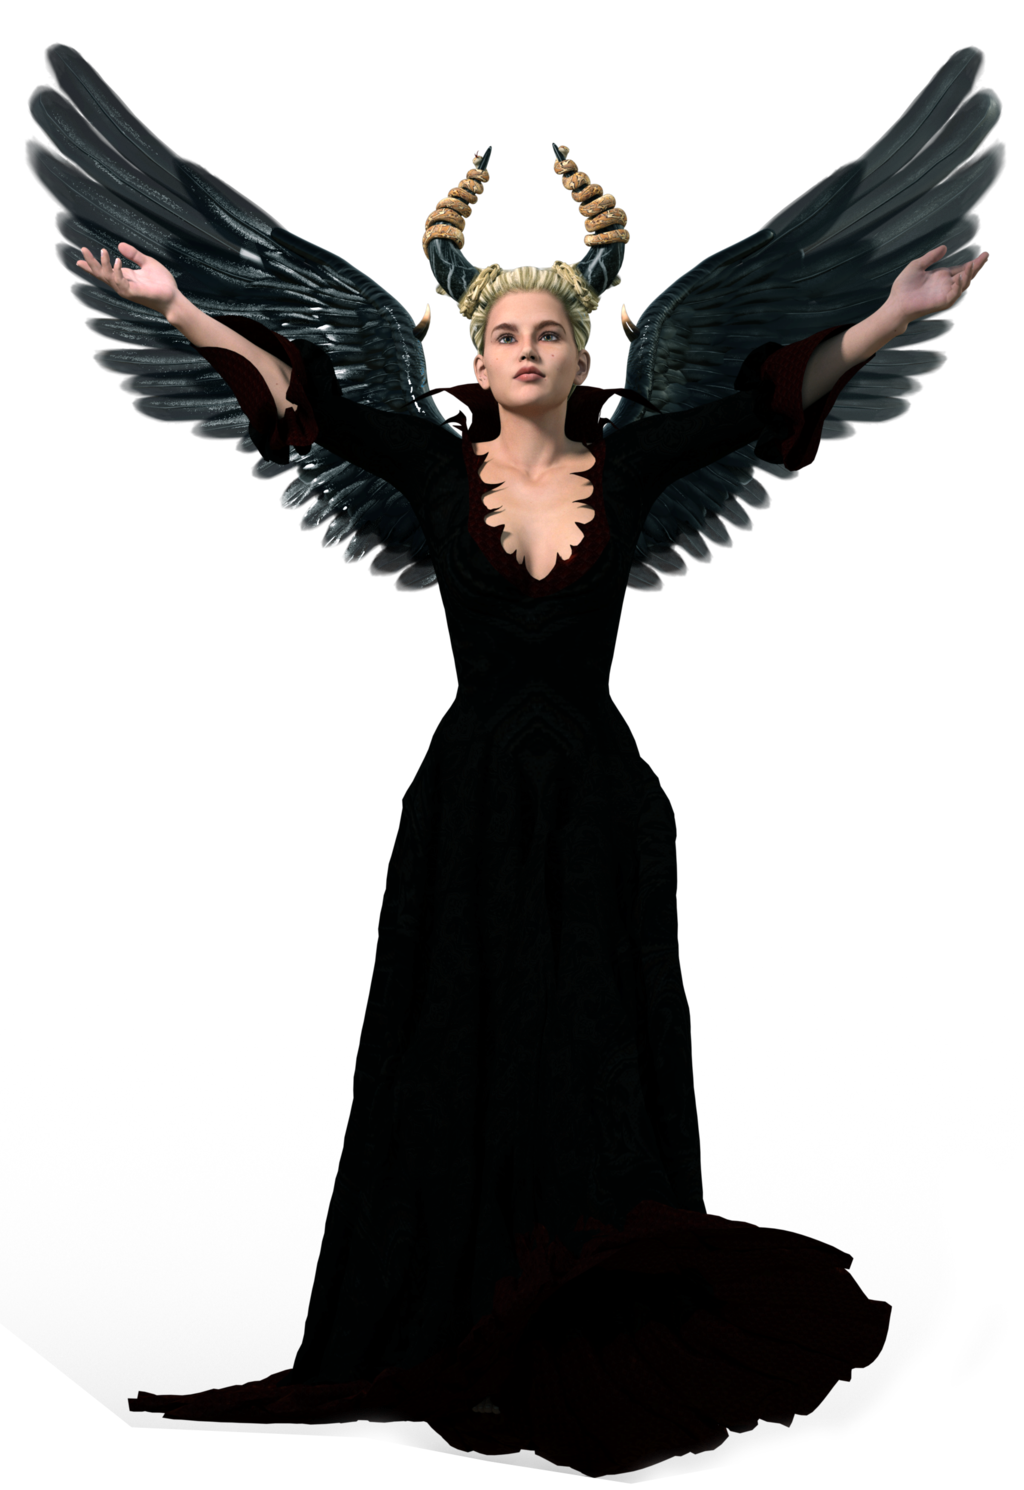 Dark transparent images all. Black angel png picture library library